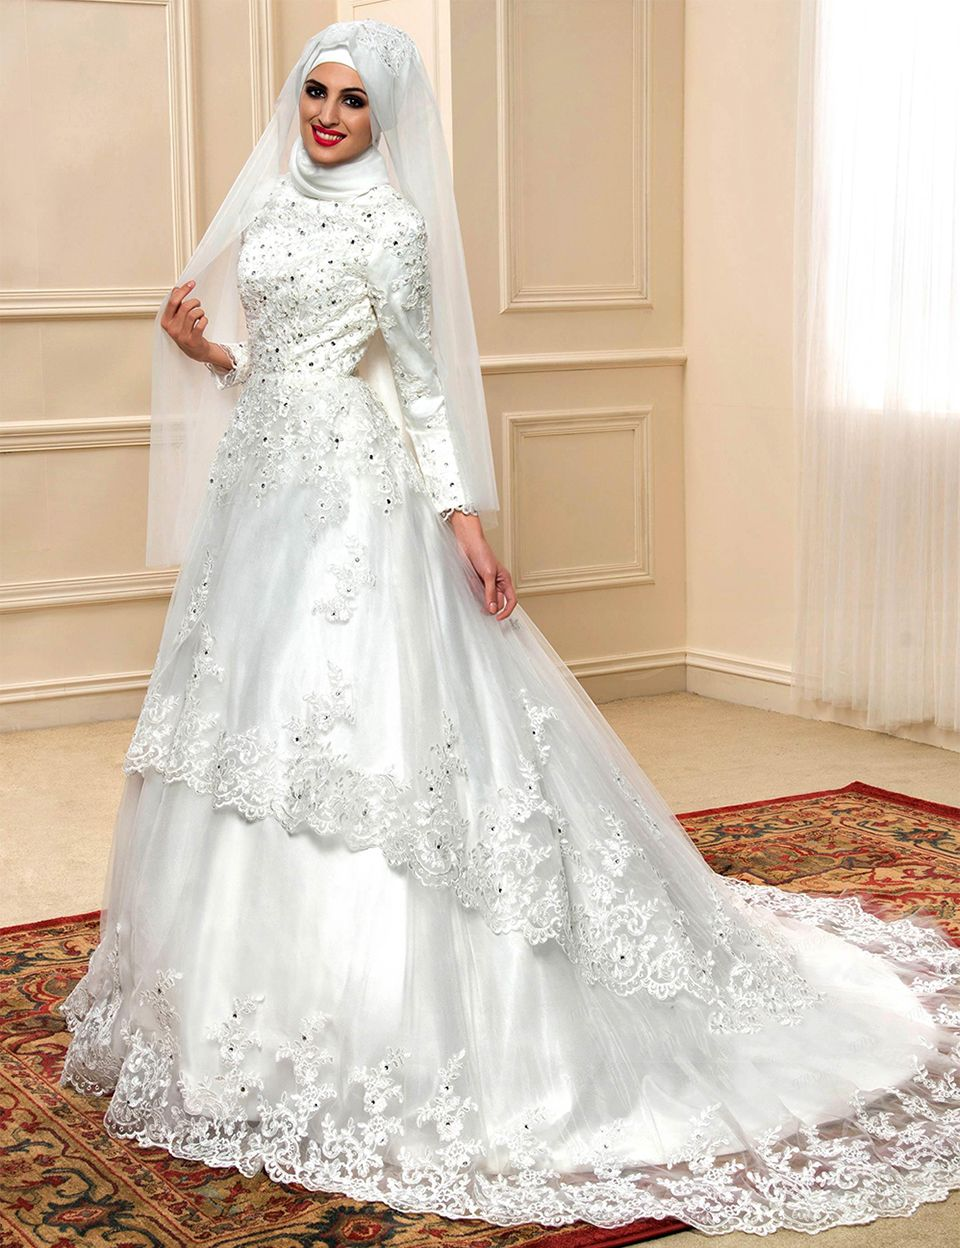 f379e4ab4fda Find a 2016 Pretty Ivory Muslim Wedding Dresses Satin Beaded Lace Long  Sleeve Wedding Dress Muslim Tiered Ball Gown Bridal Dresses Online Shop For  U !